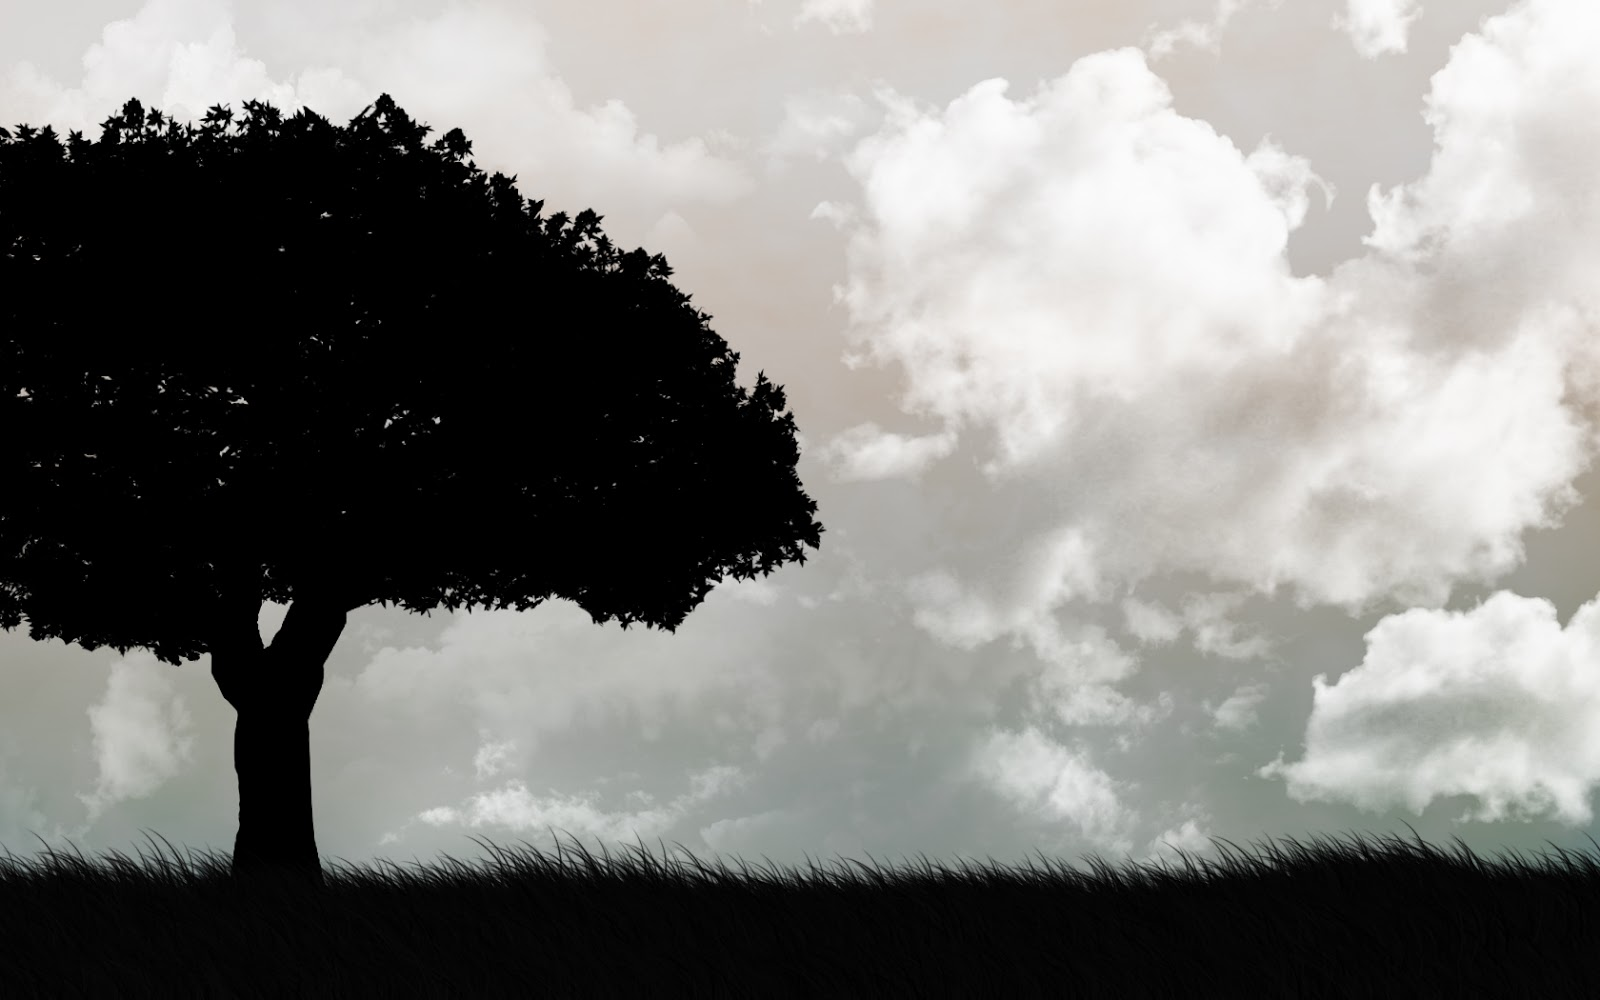 abstract tree hd wallpapers - photo #32